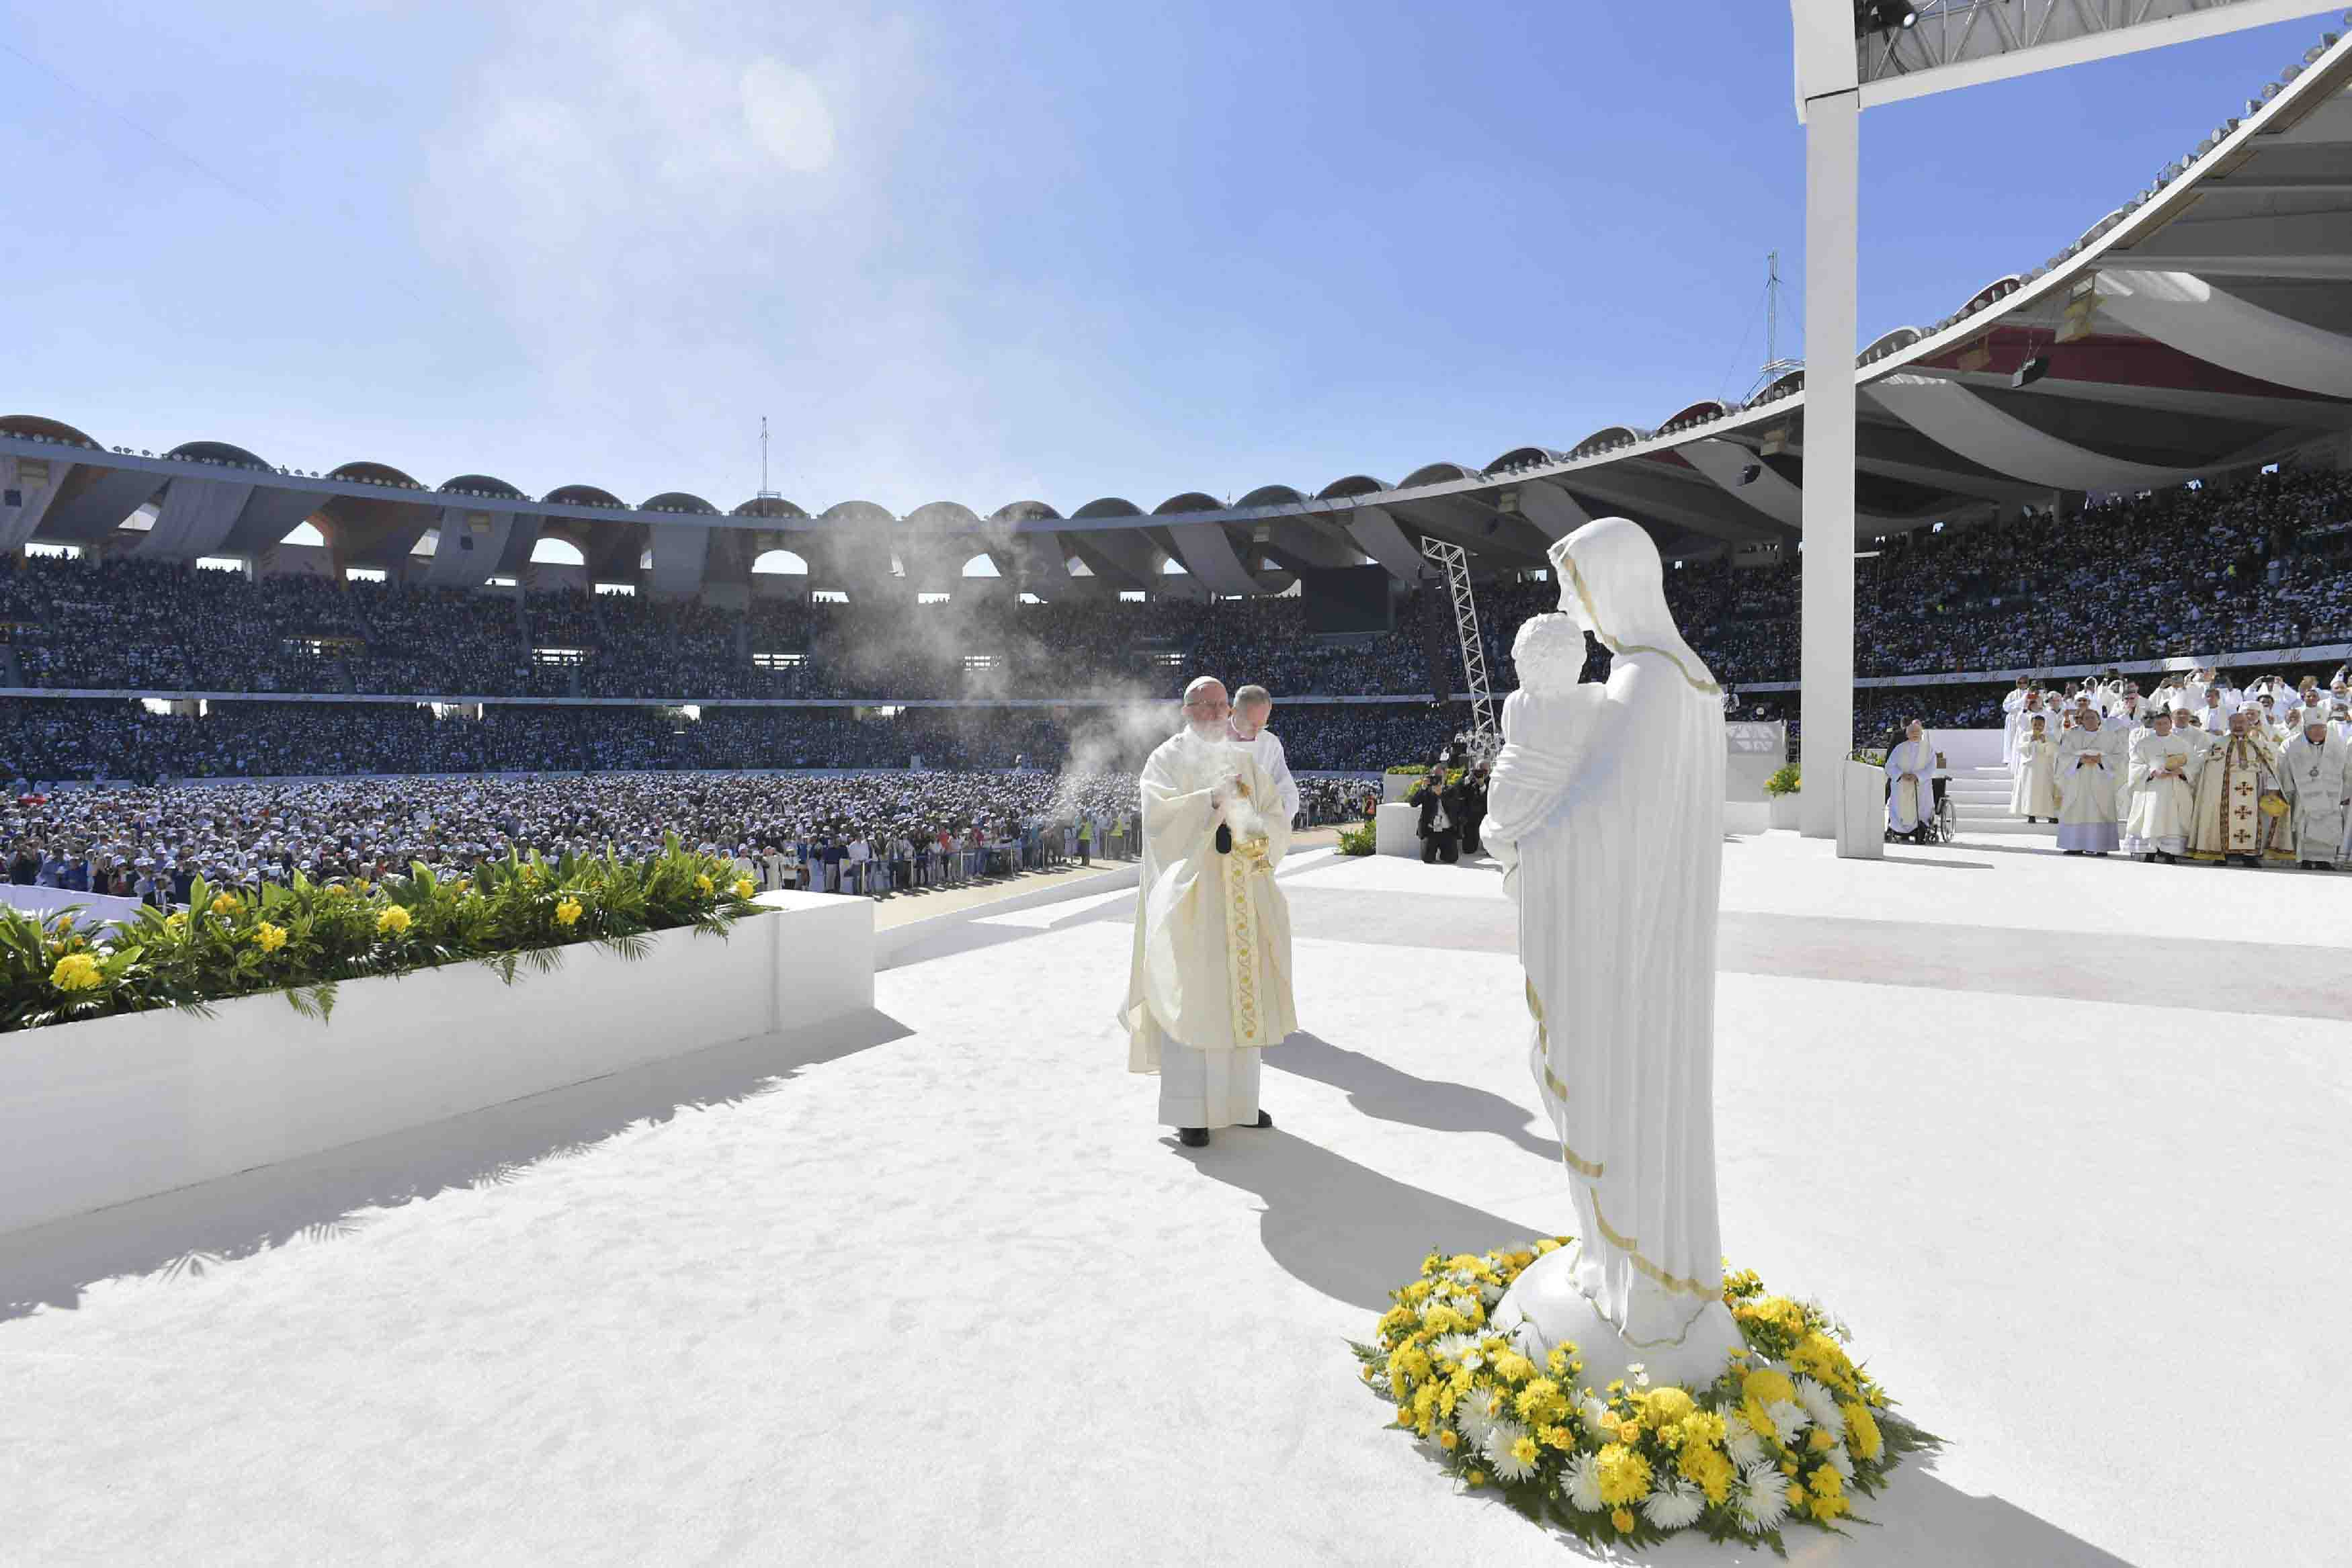 Tuesday's mass came a day after the pope called for an end to wars in the troubled Middle East, including in Yemen and Syria